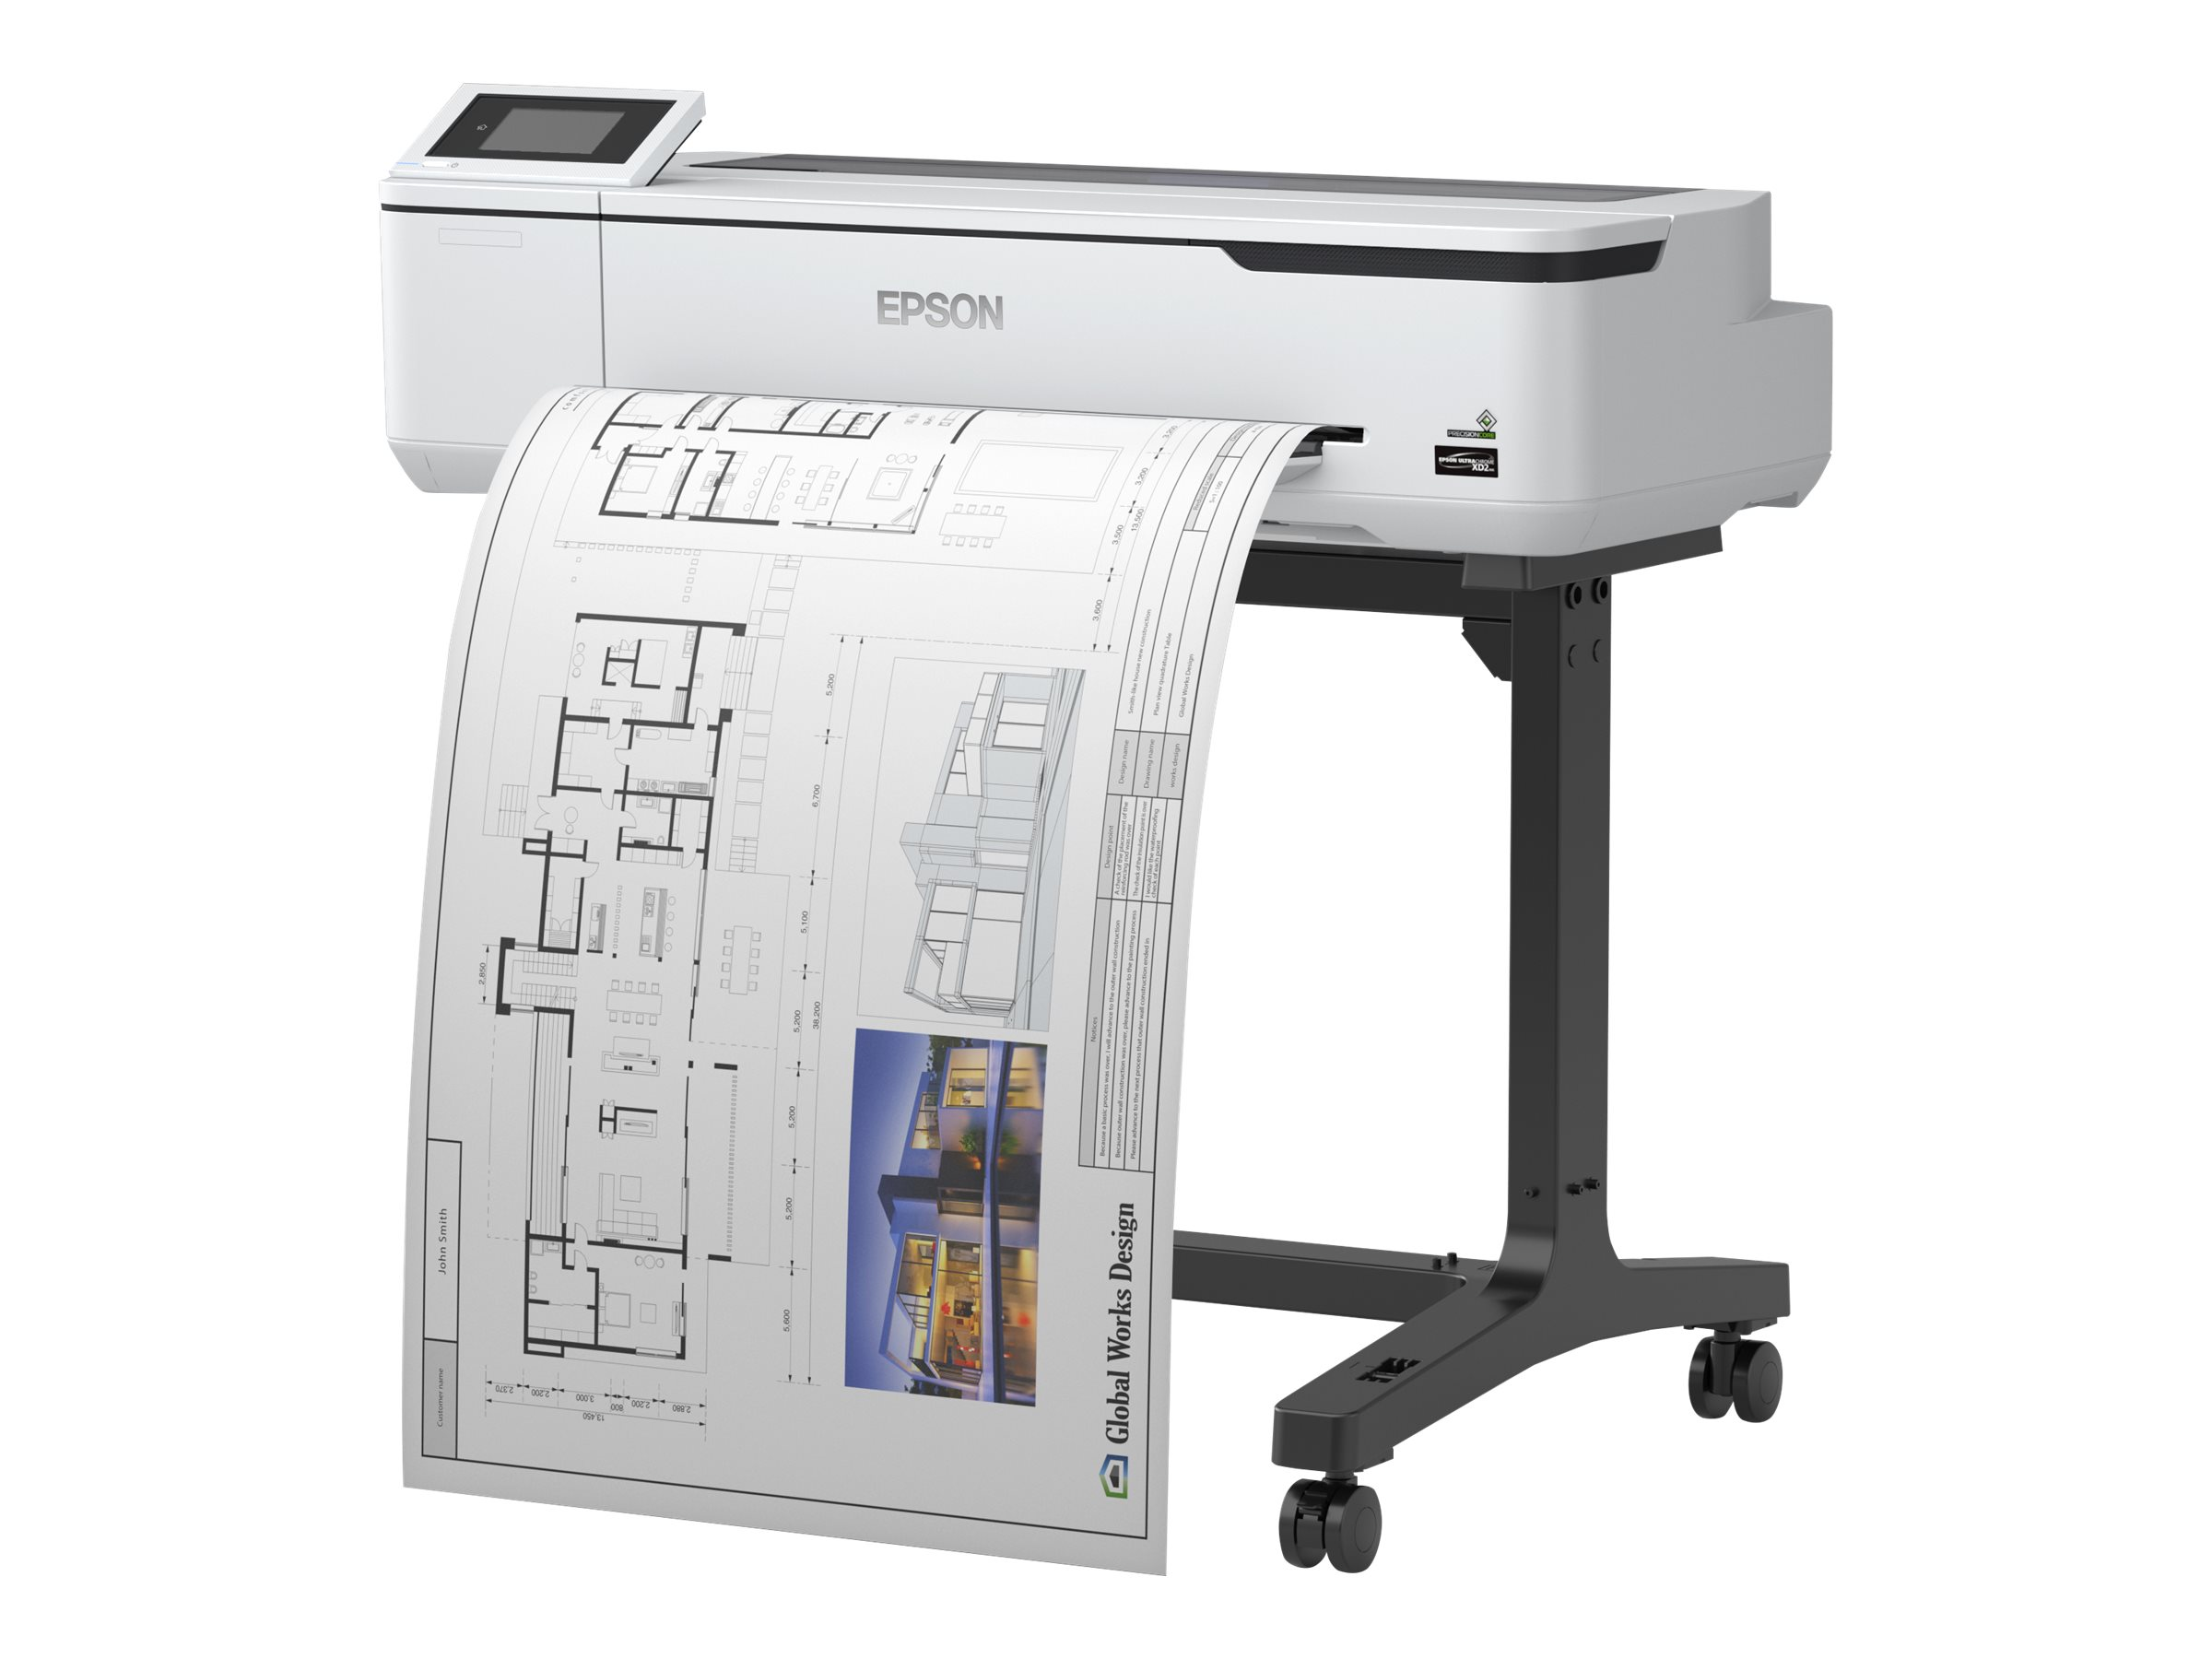 "Epson SureColor SC-T3100 - 610 mm (24"") Gro?formatdrucker - Farbe - Tintenstrahl - Rolle A1 (61,0 cm)"